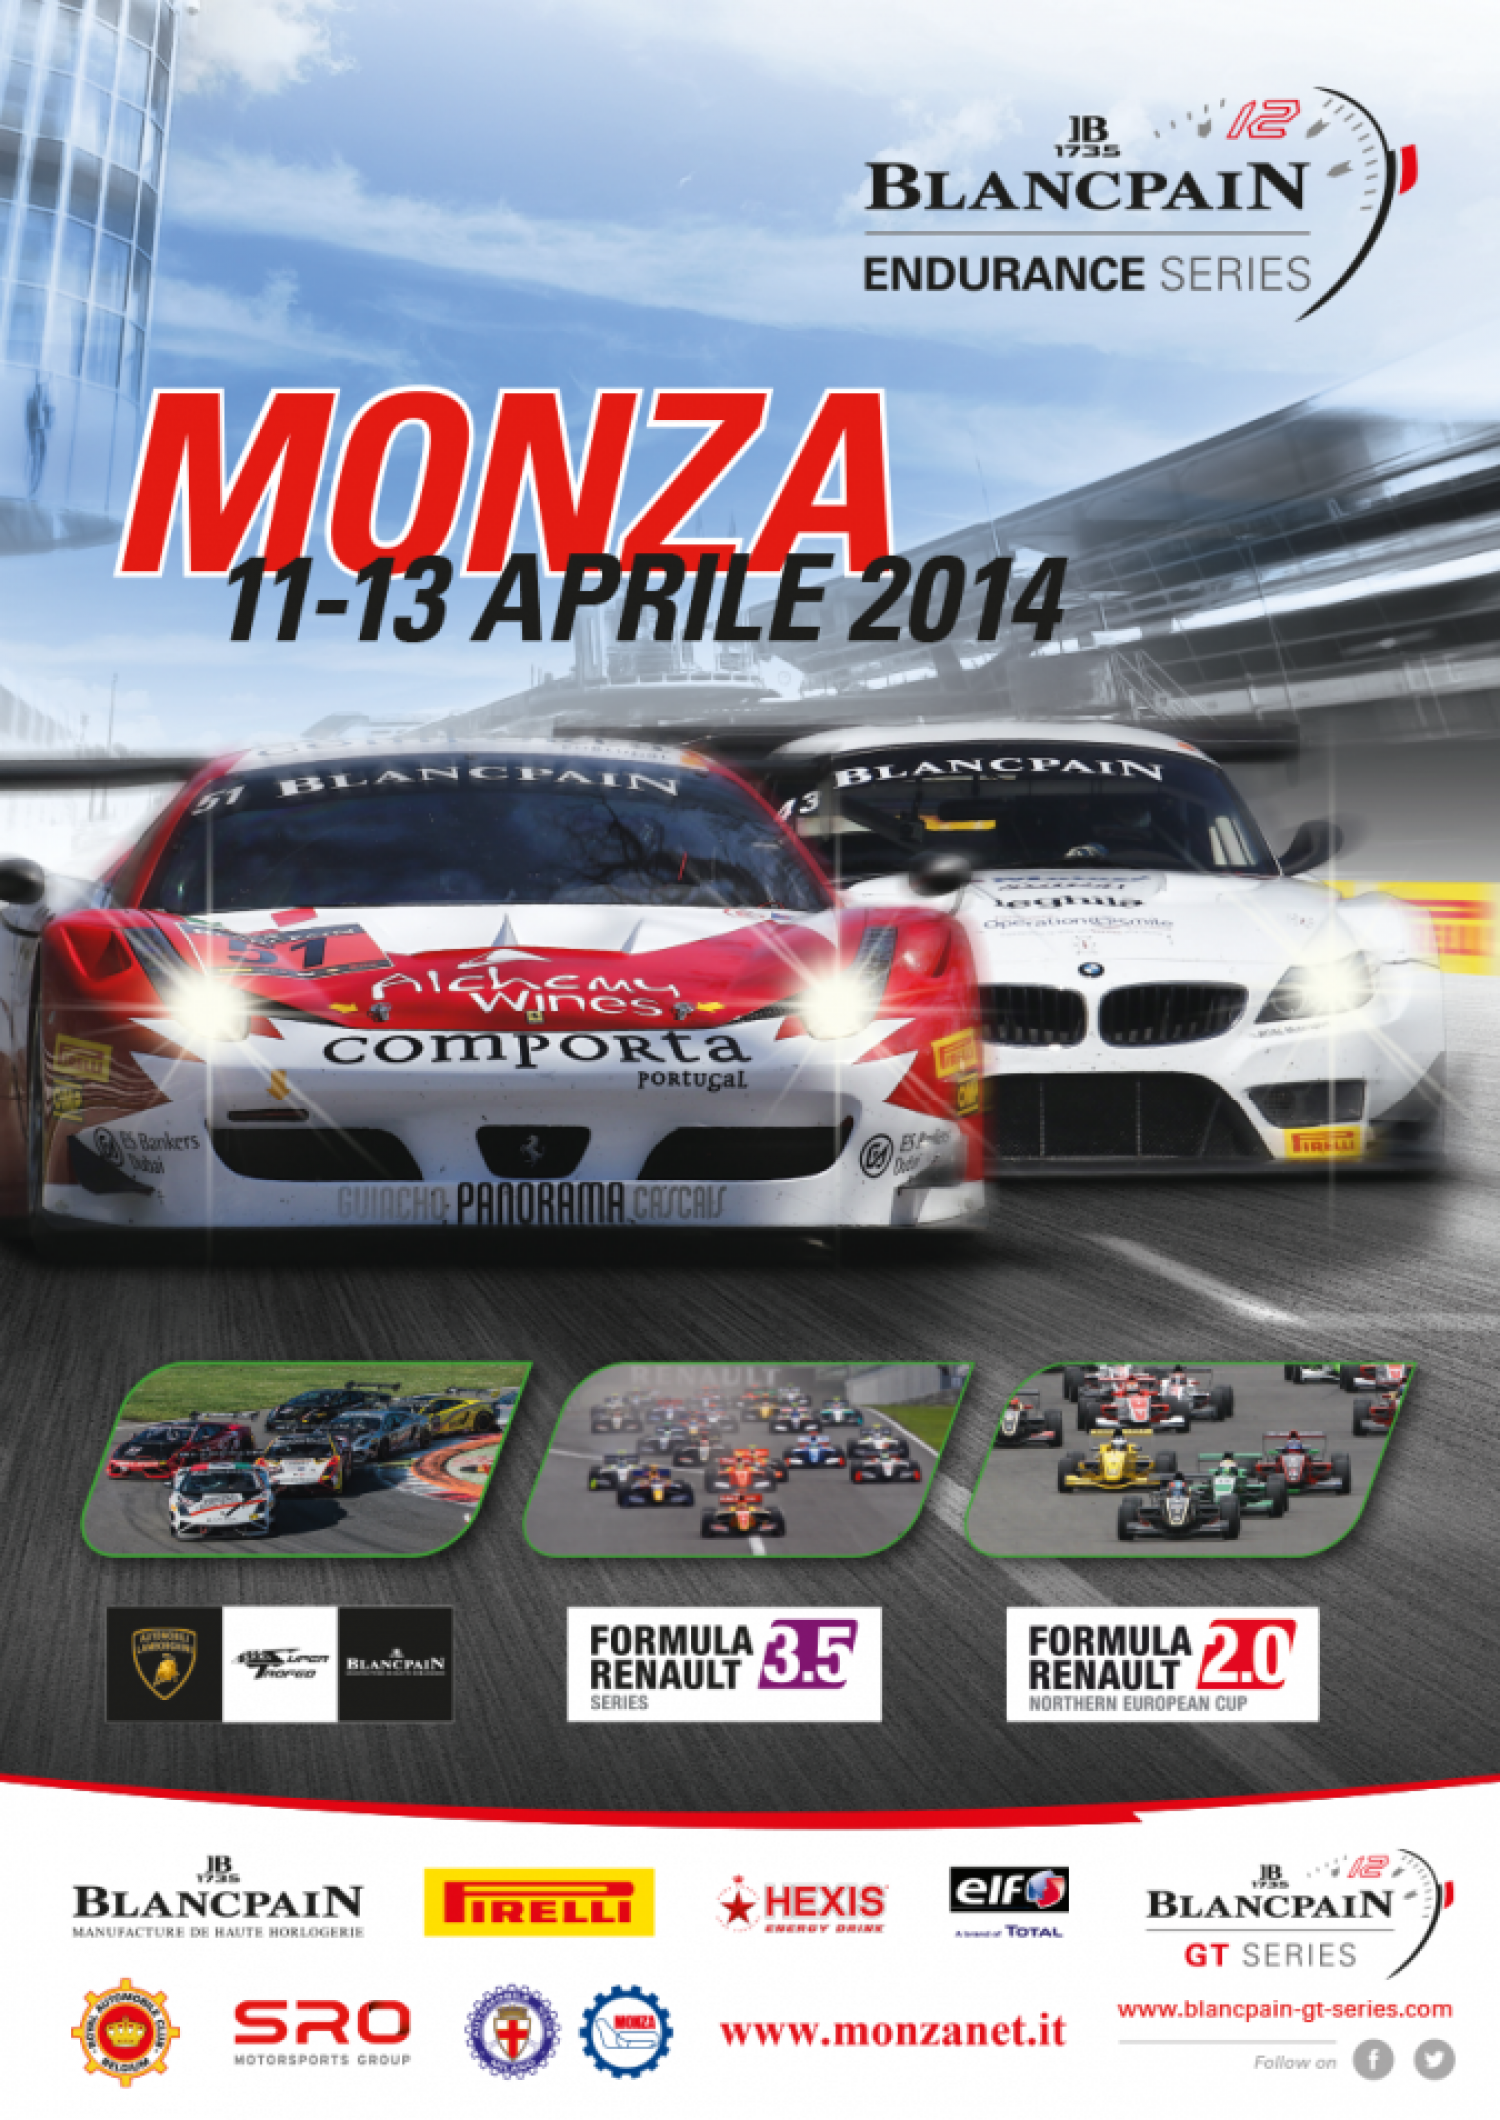 Tickets sales for the Blancpain Endurance Series at Monza are on line!